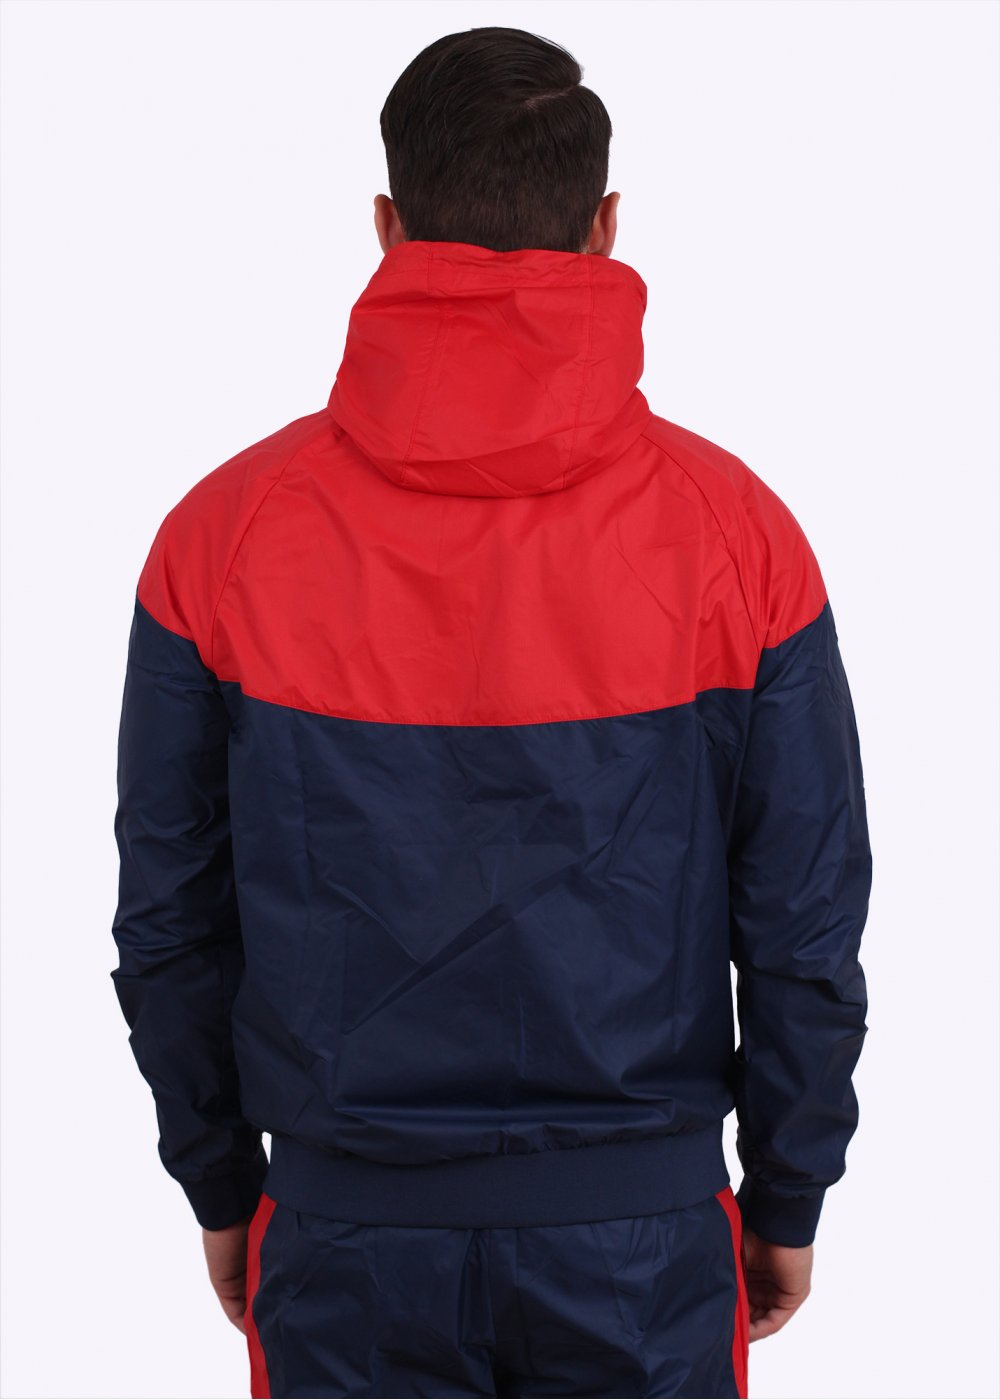 Nike Apparel Windrunner Tracksuit Navyred Triads Mens From